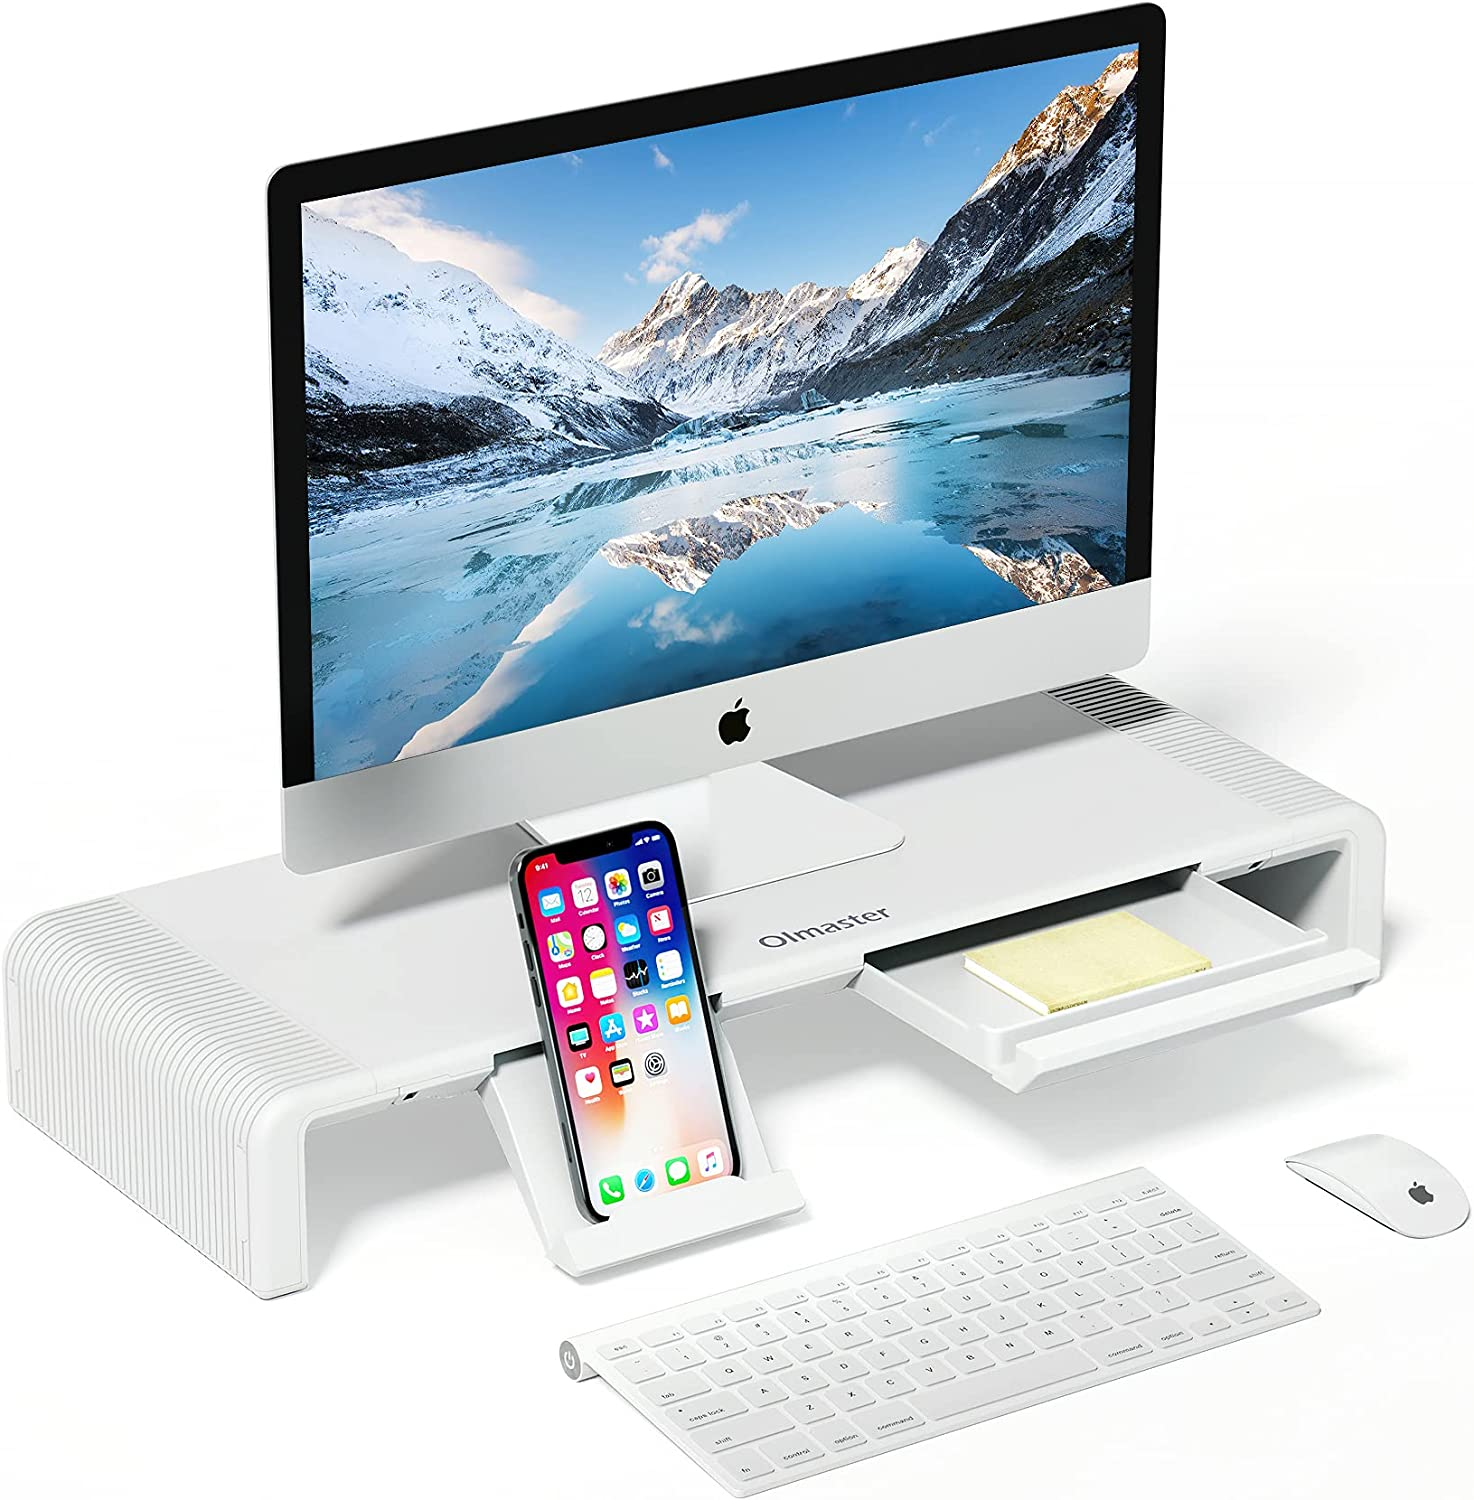 Monitor Stand Riser, OImatser Foldable Computer Monitor Riser, Adjustable Height Computer Stand and Storage Drawer & Pen Slot, Phone Stand for Computer, Desktop, Laptop, Save Space (Model A-White)